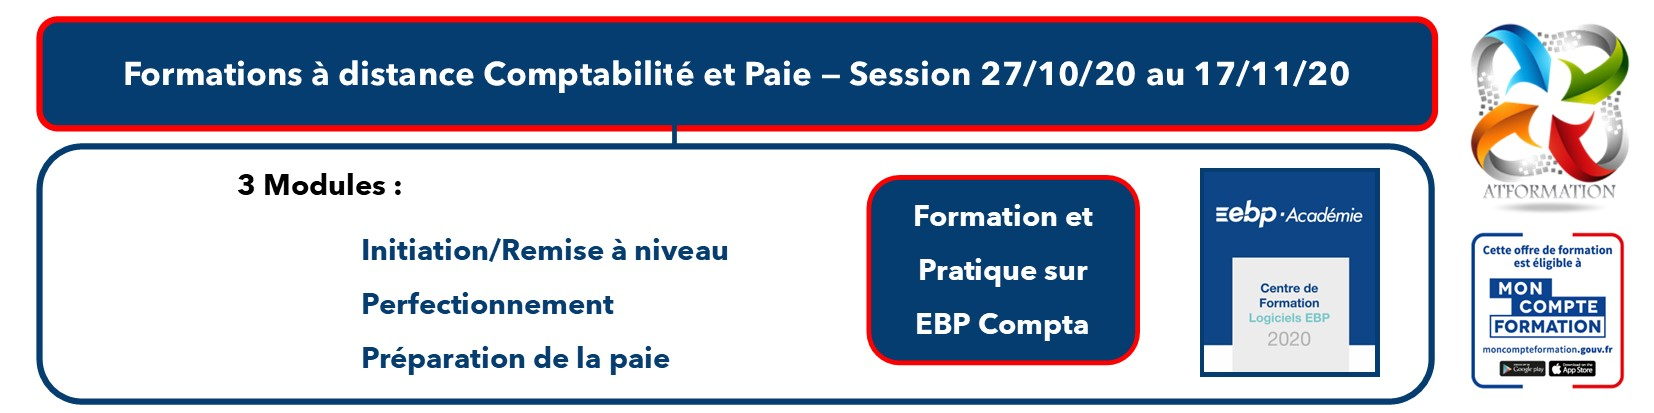 AT FORMATION COMPTABILITE PAIE A DISTANCE MON COMPTE FORMATION 10.20